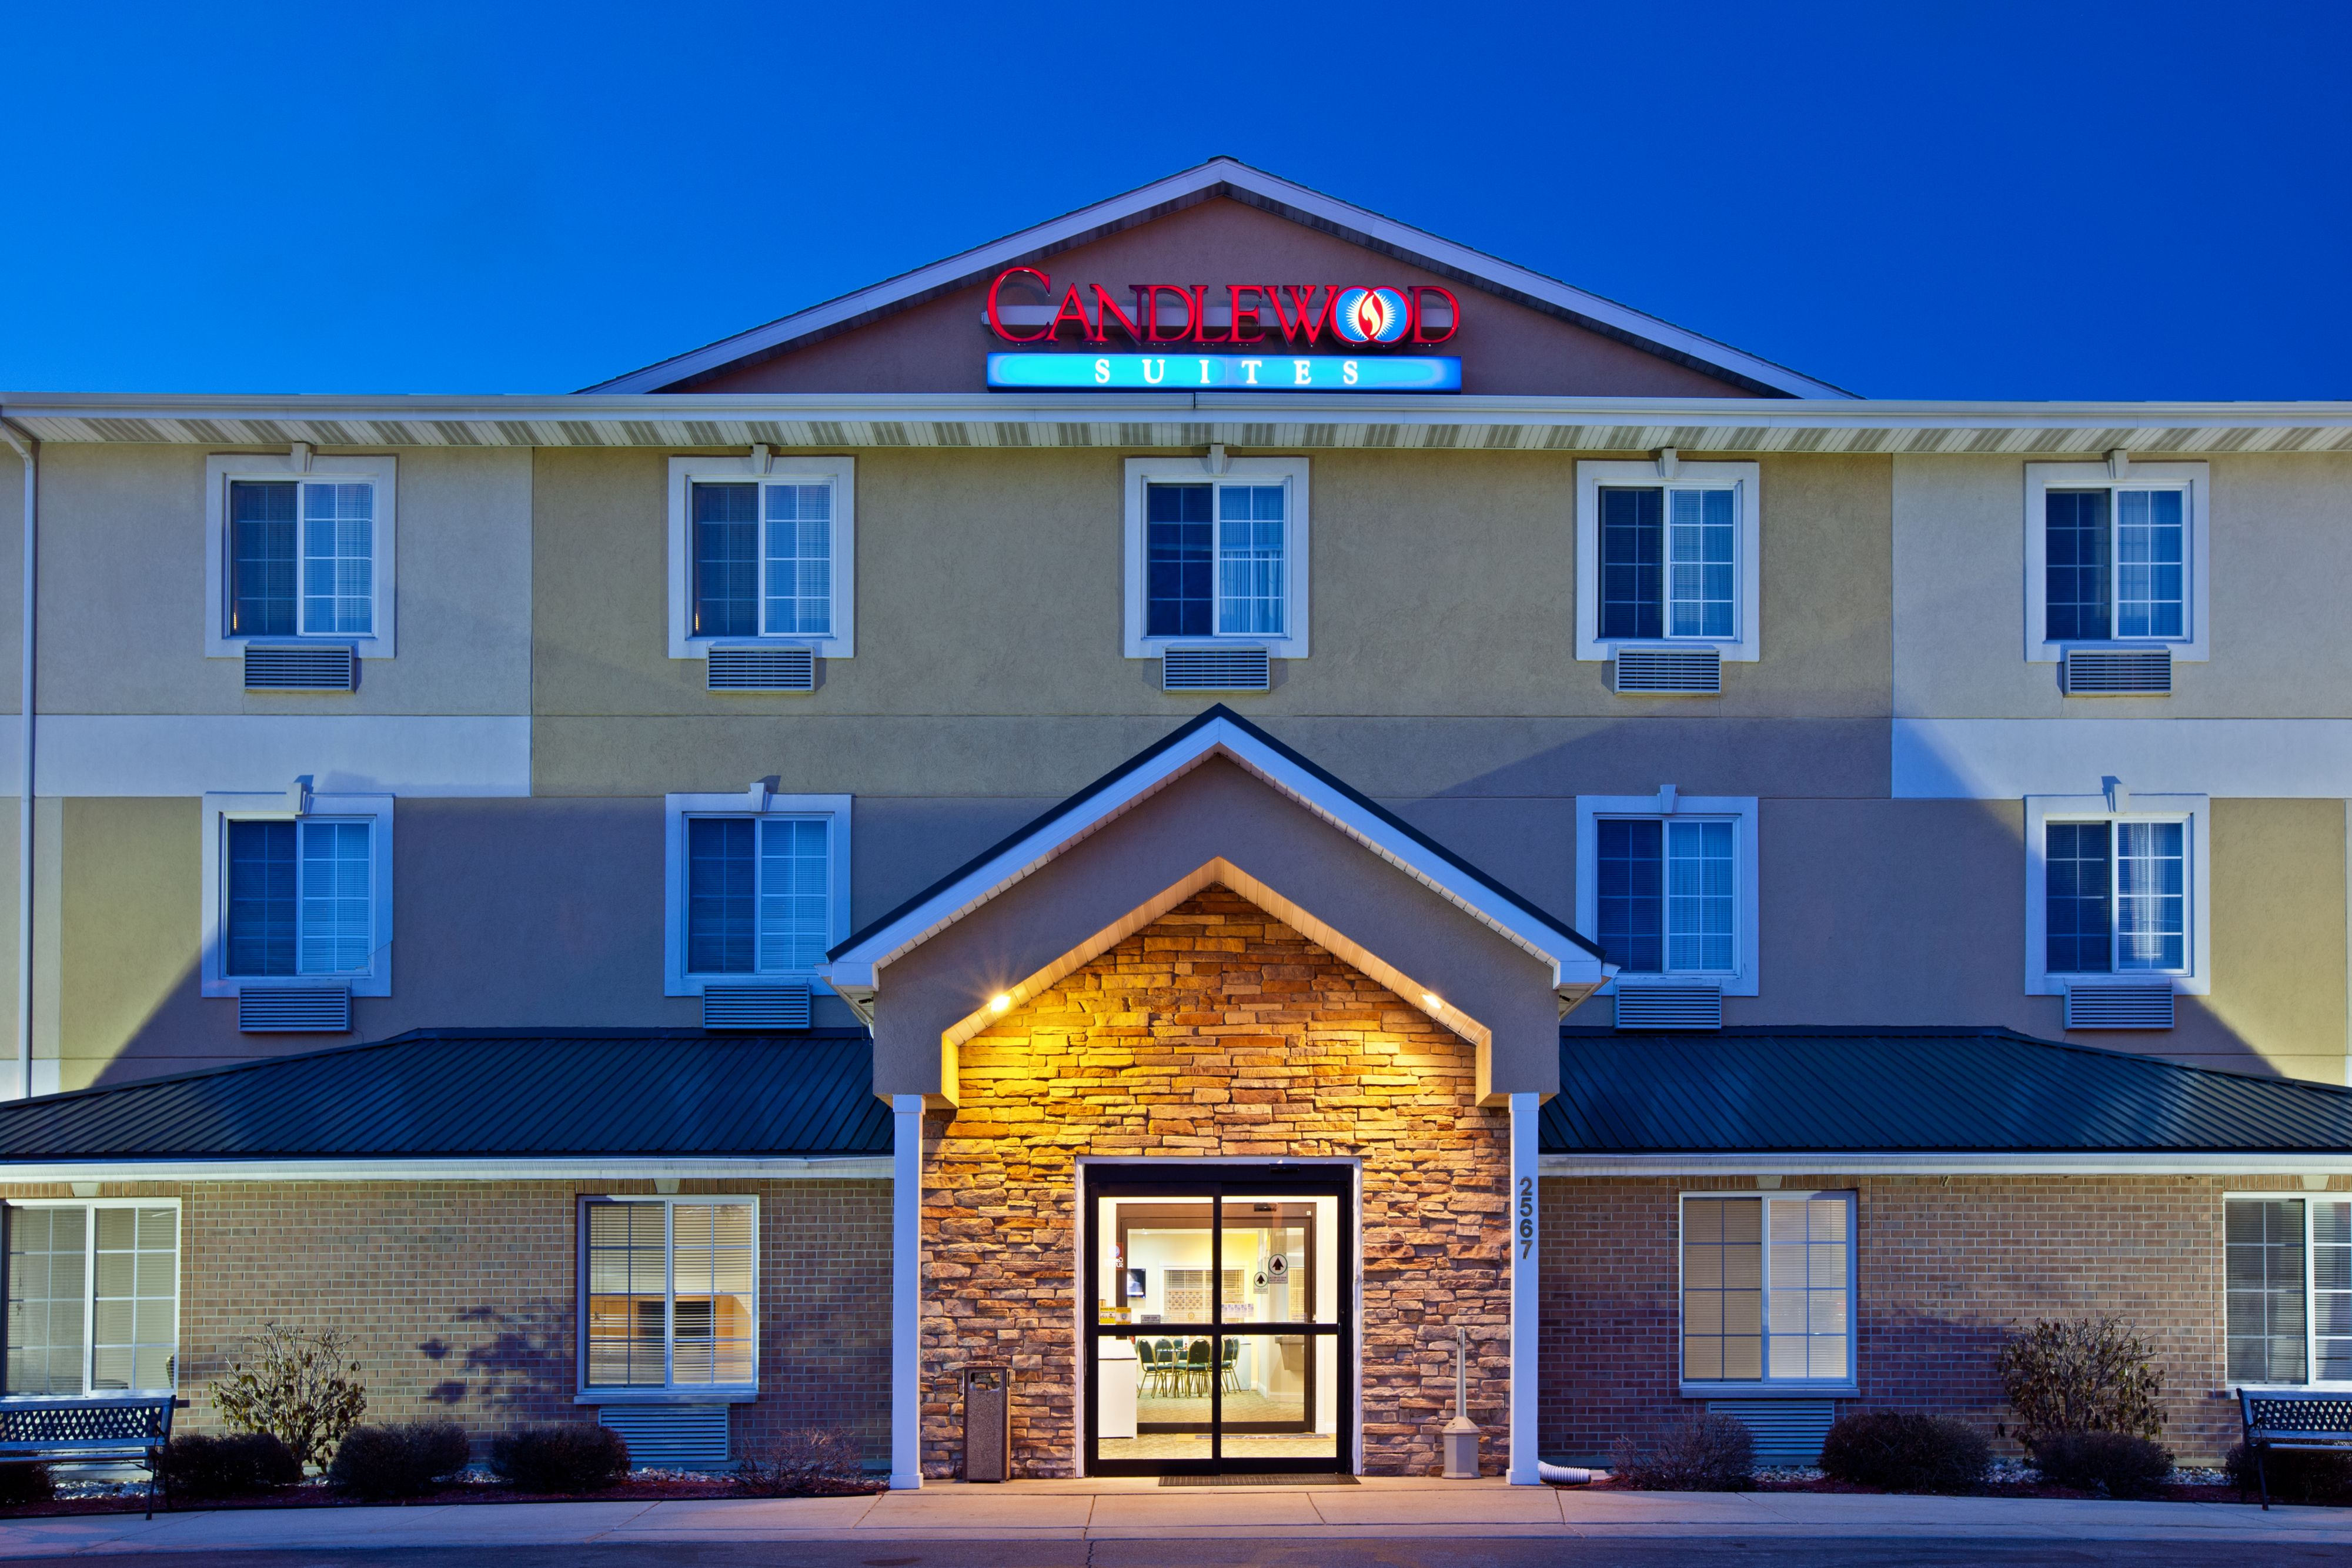 Candlewood Suites Springfield image 5